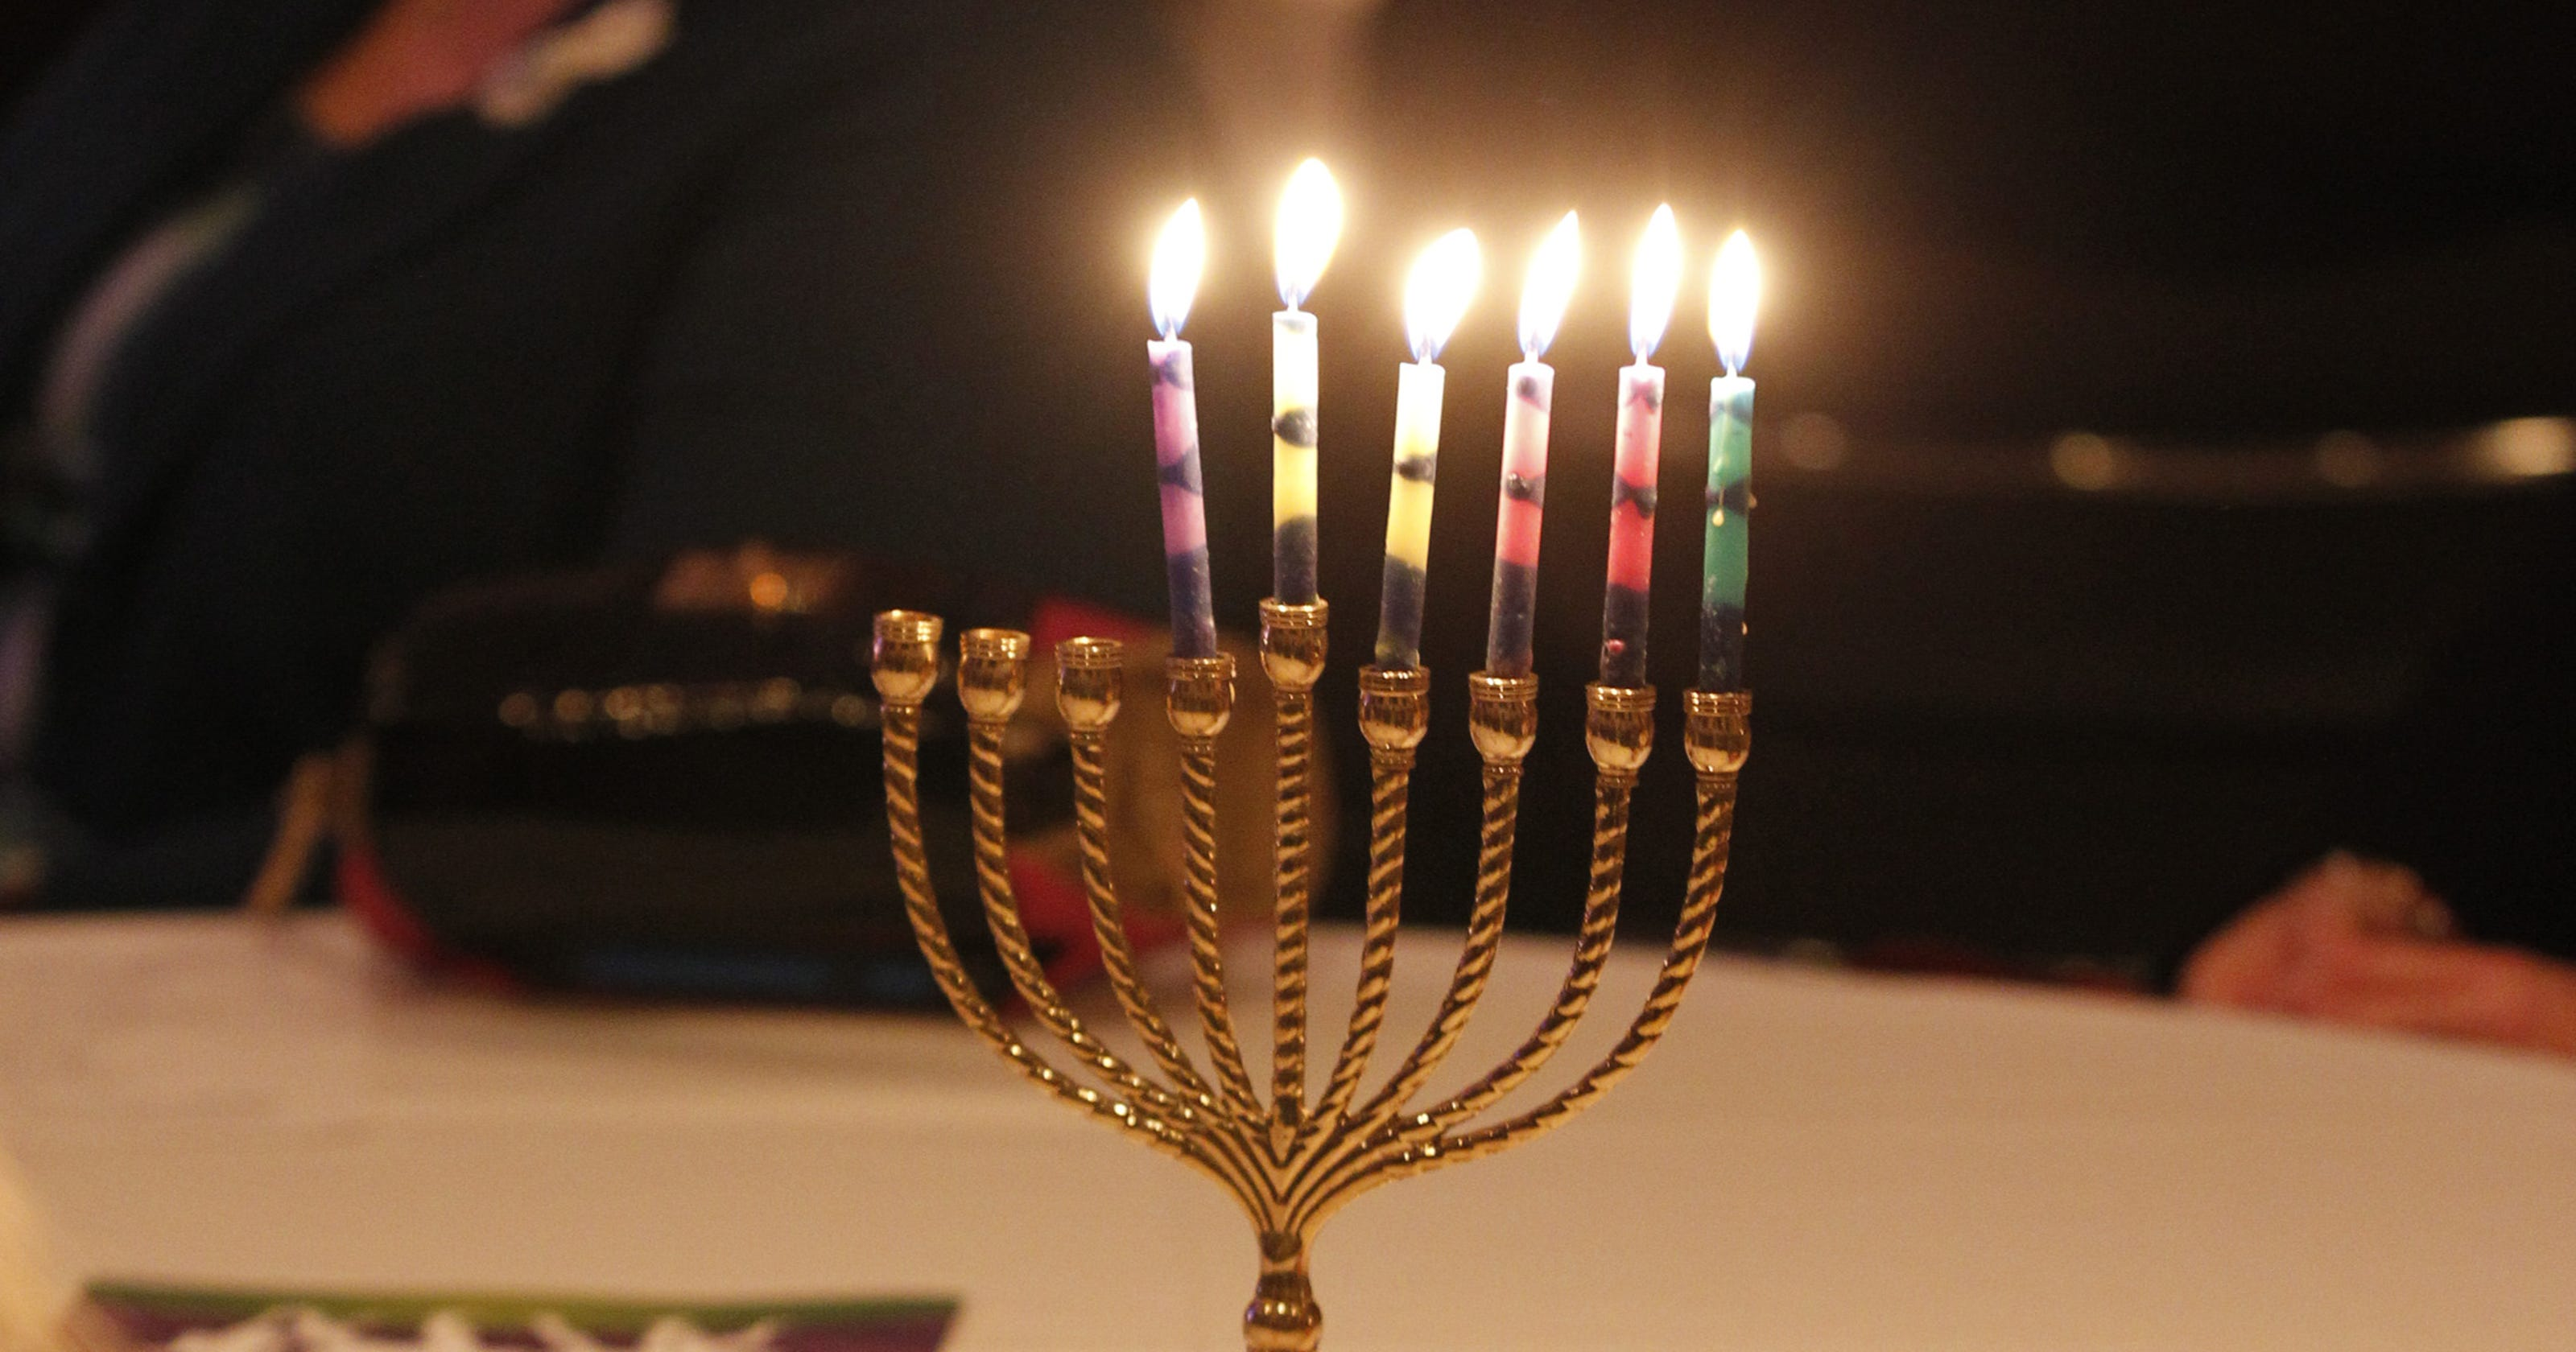 Wrong Christmas Message May Insult Jews Others